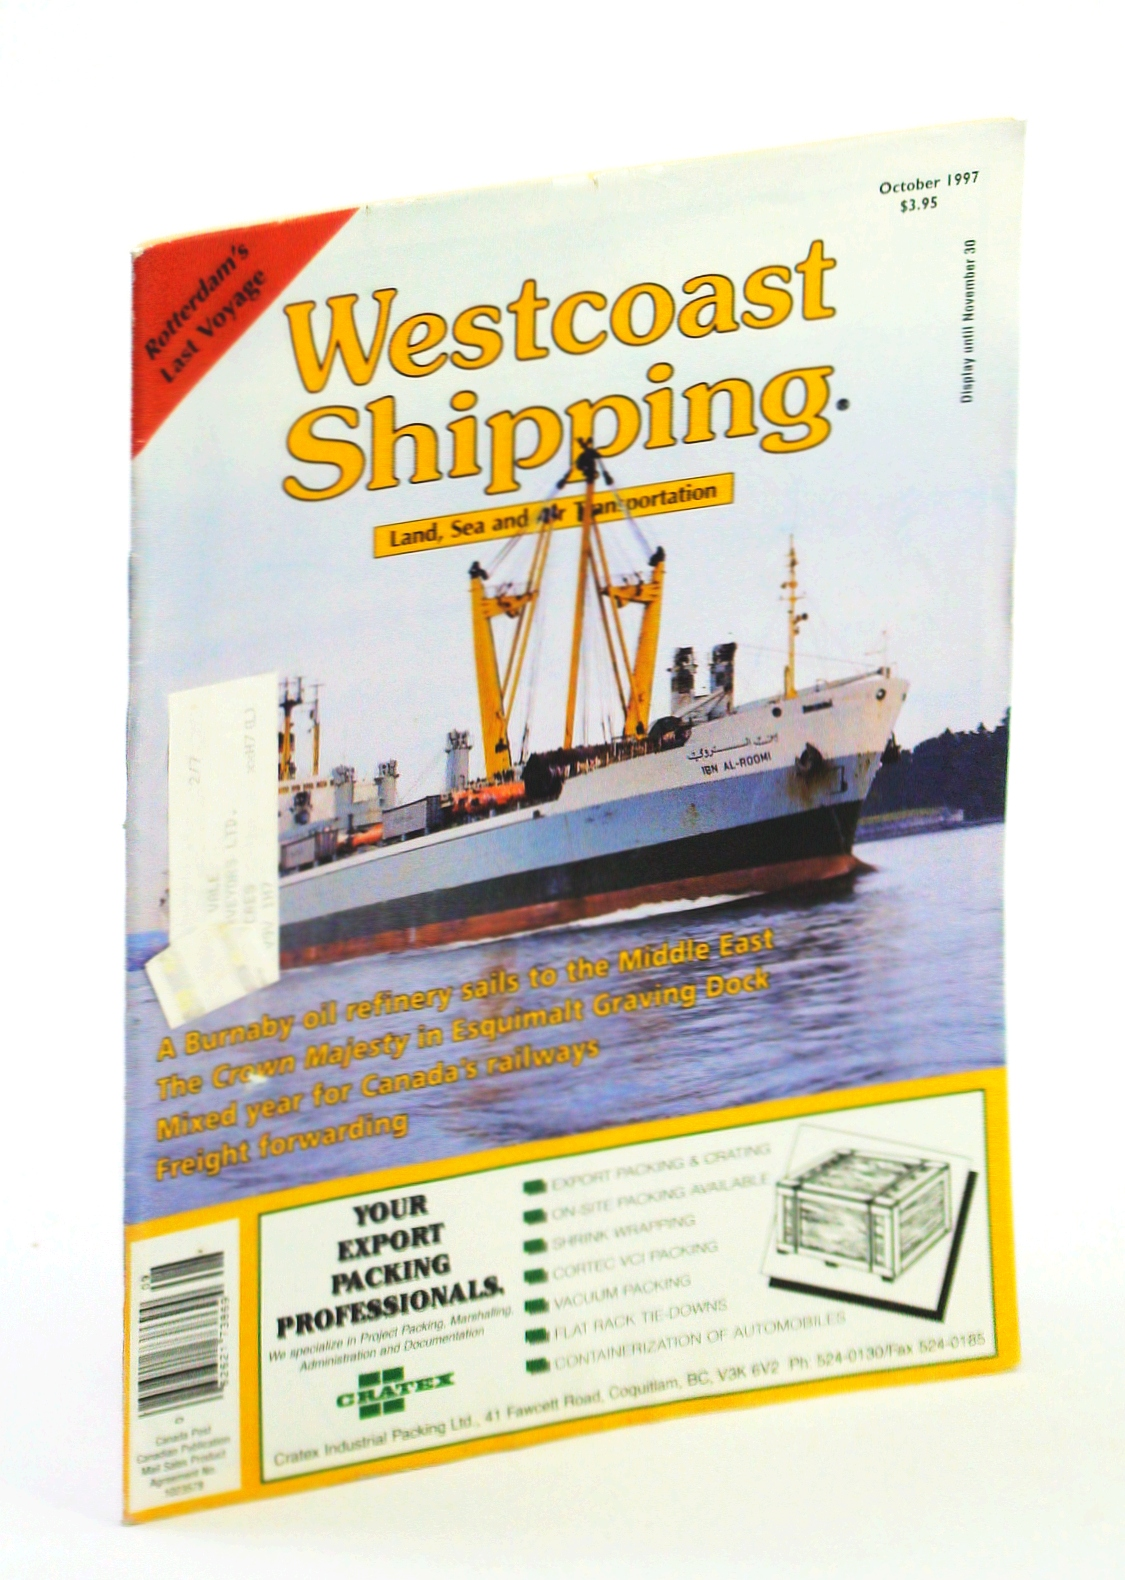 Image for Westcoast Shipping [Magazine] - Your Connection to Land, Sea, Air in the Pacific Rim, October 1997